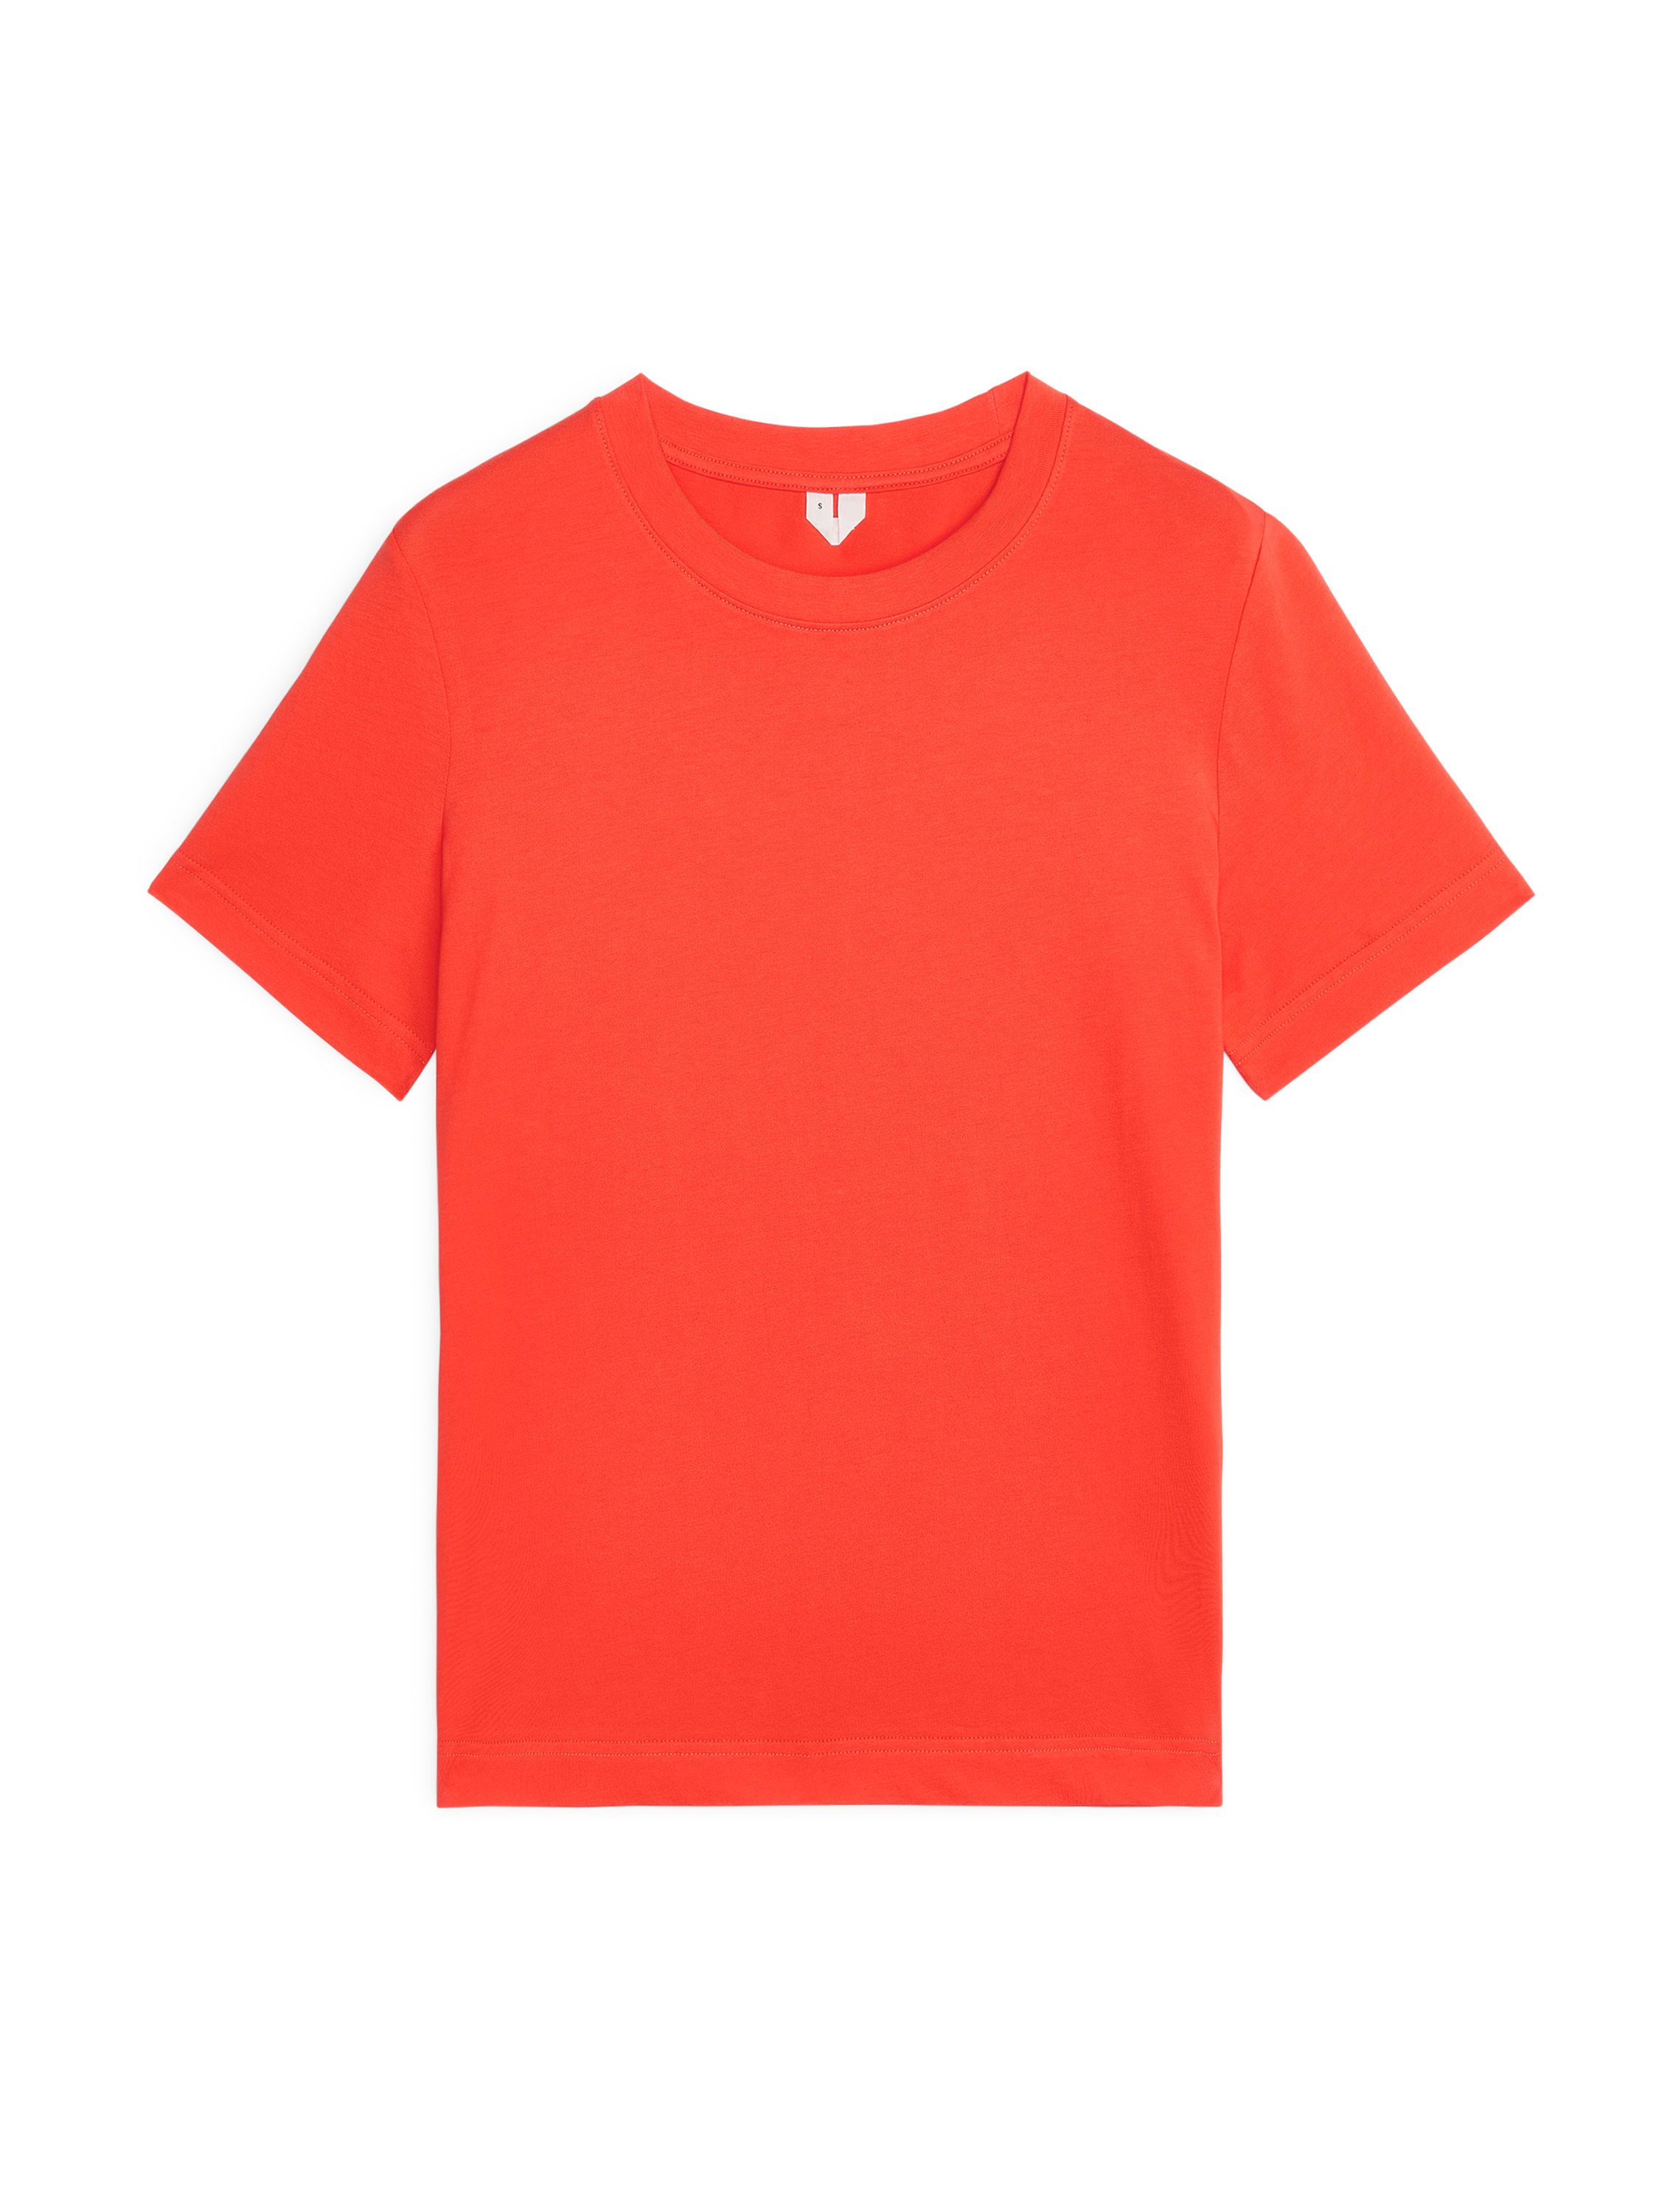 Fabric Swatch image of Arket crew-neck t-shirt in orange